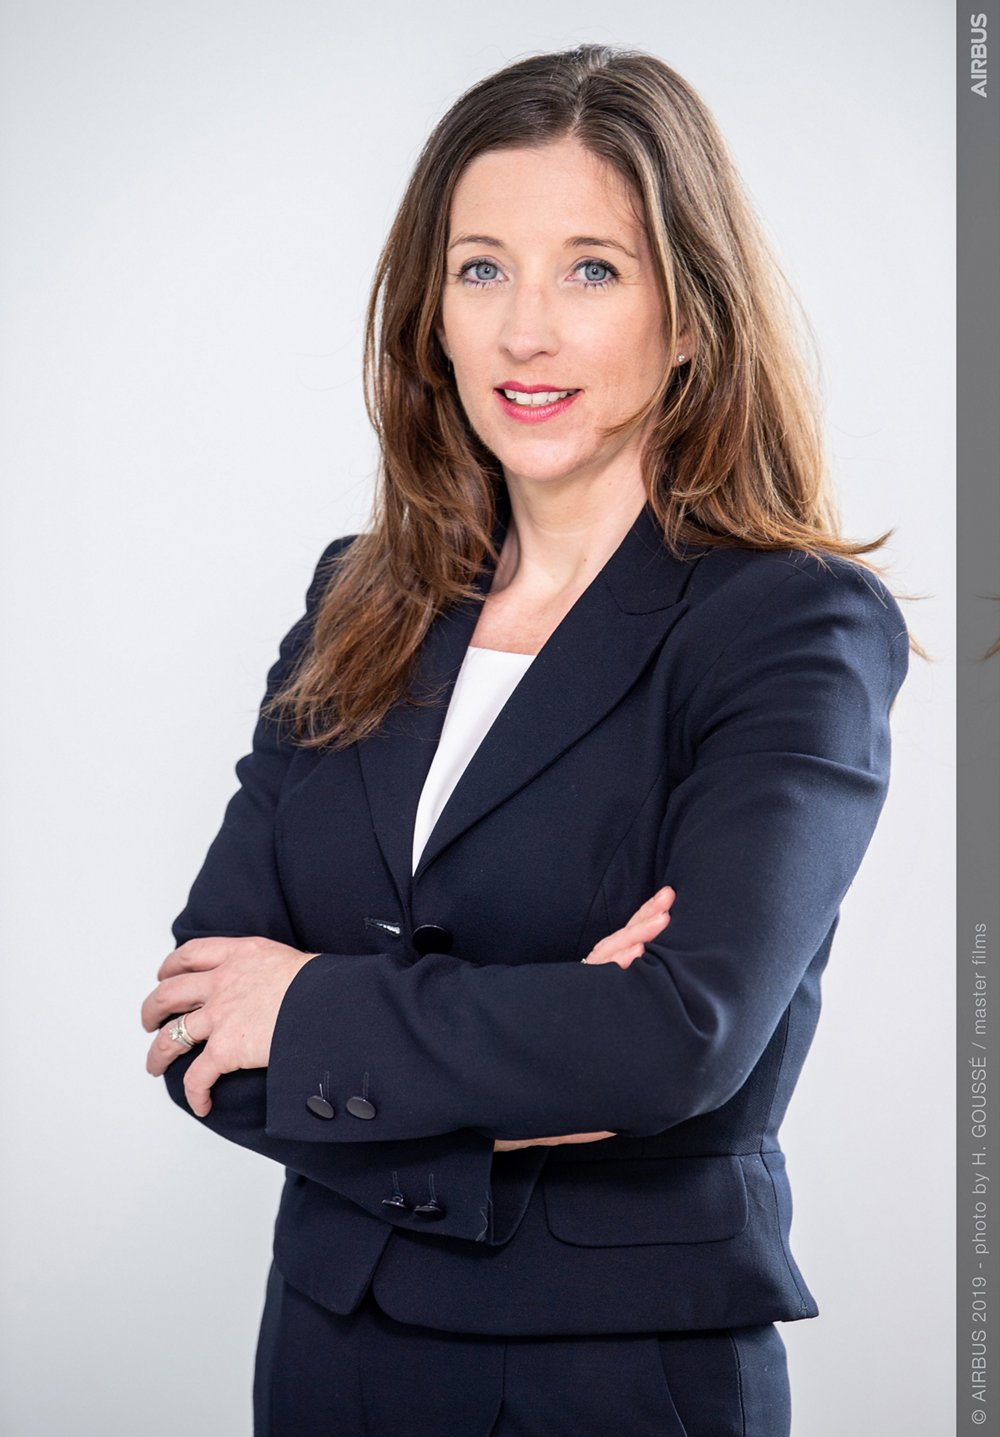 Julie Kitcher - Executive Vice President Communications and Corporate Affairs Airbus